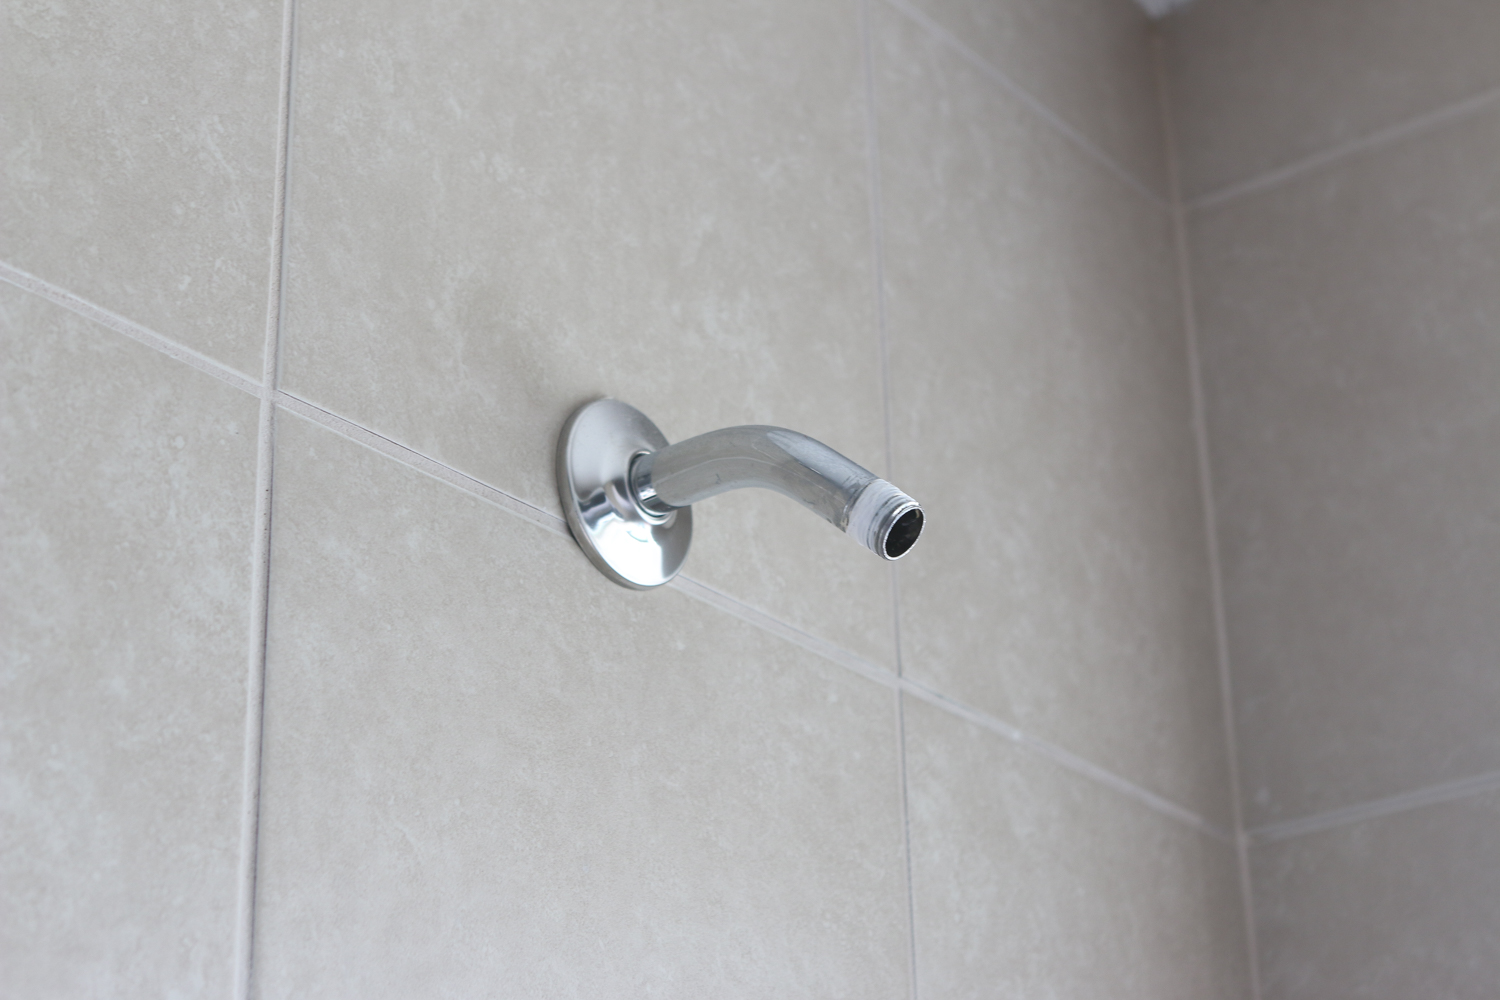 How to Replace a Showerhead to Increase Water Pressure - Home ...